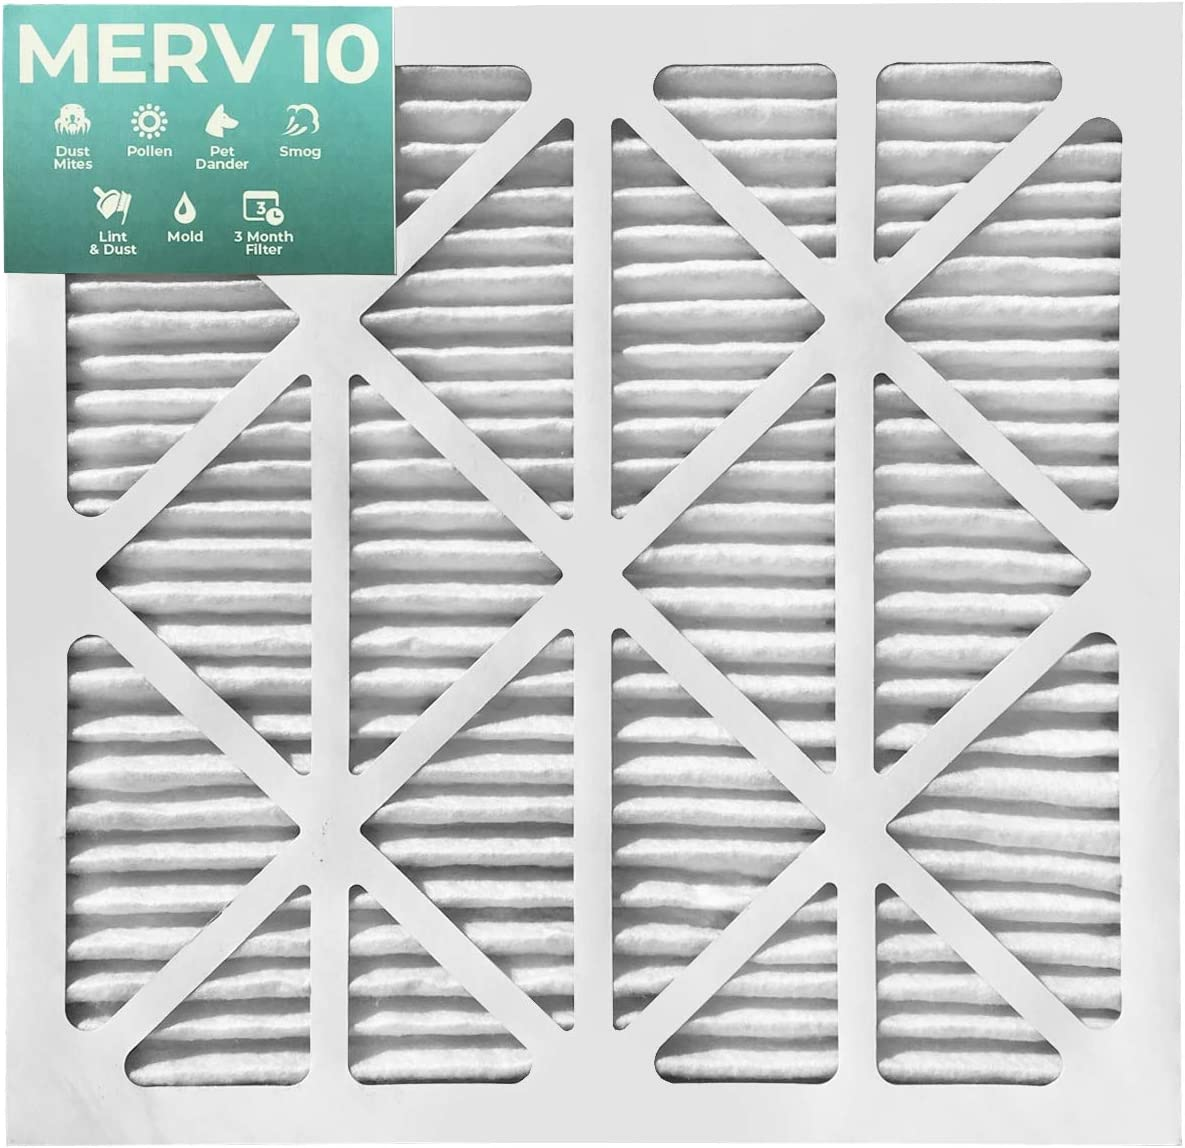 18x25x1 Merv 8 Furnace Filter 12 Pack by Glasfloss Industries